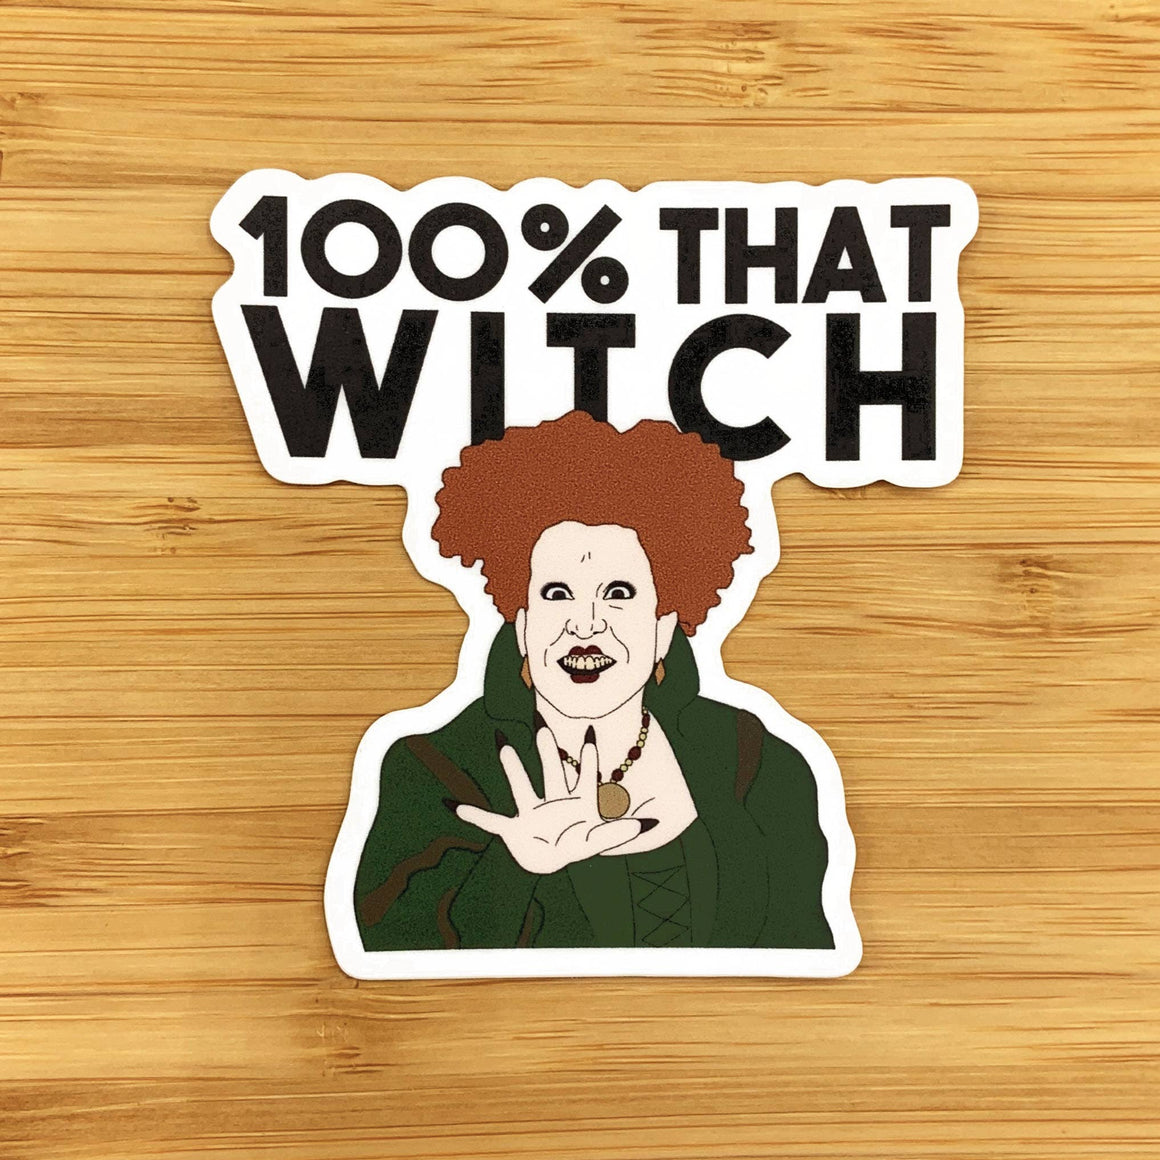 Citizen Ruth - Hocus Pocus Winifred 100% that witch sticker